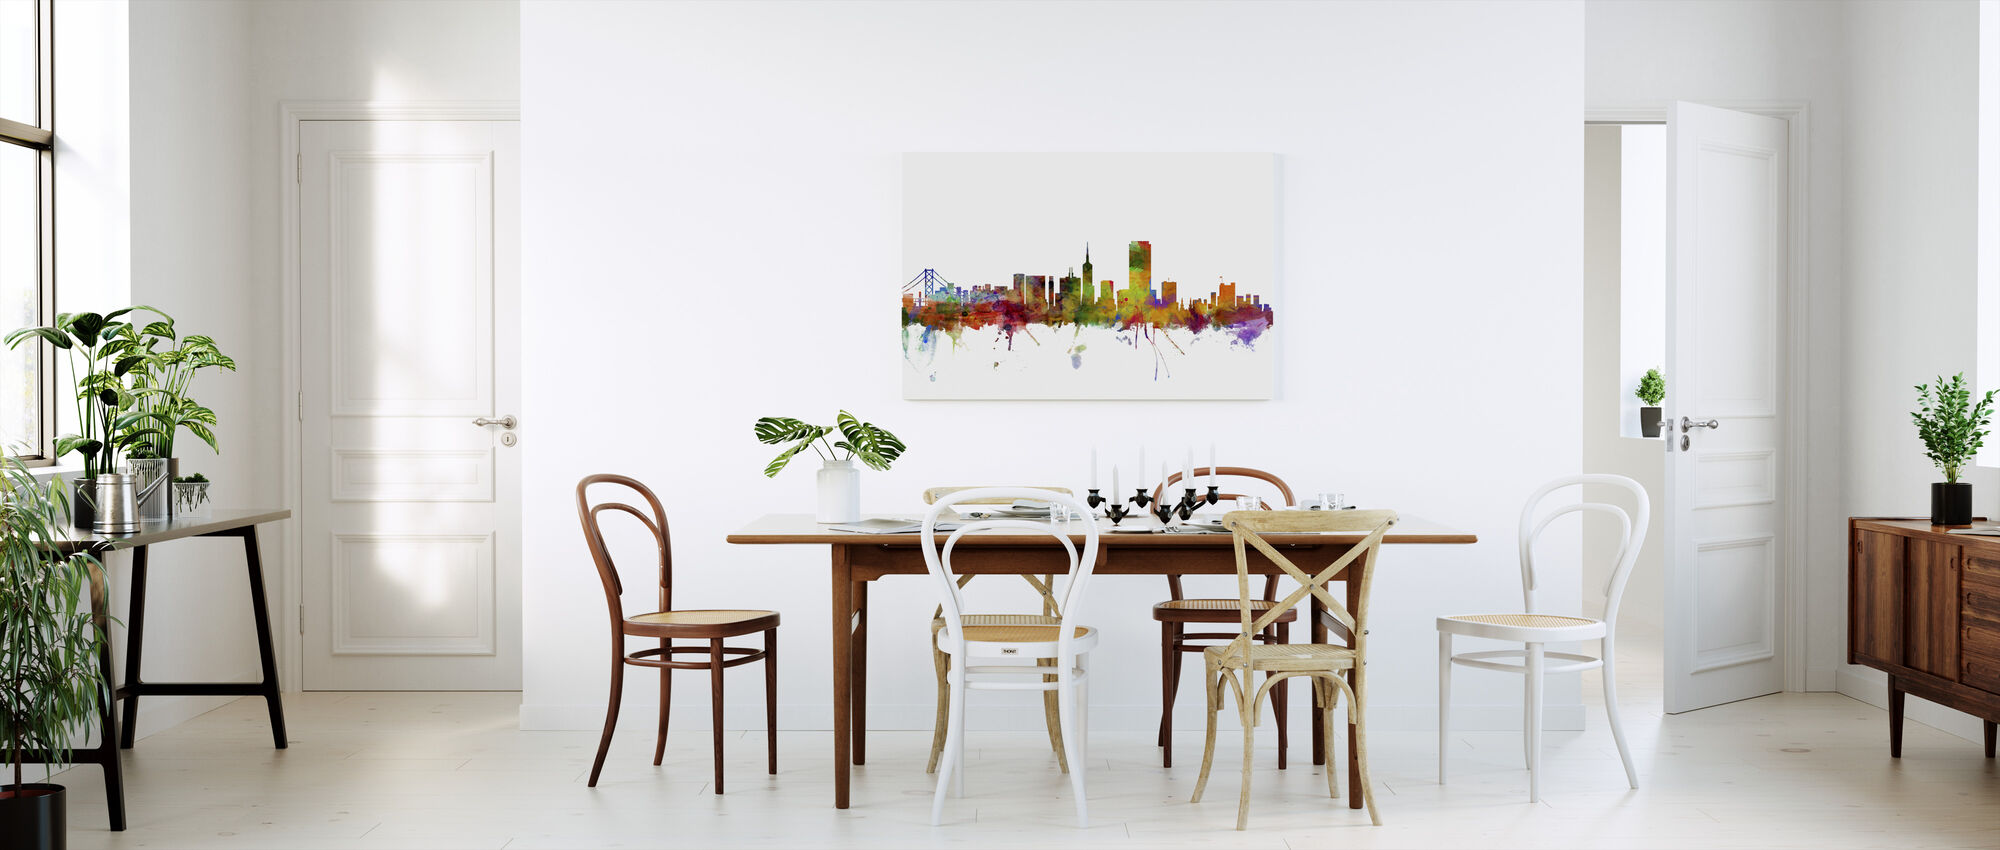 San Francisco Skyline - Canvas print - Kitchen